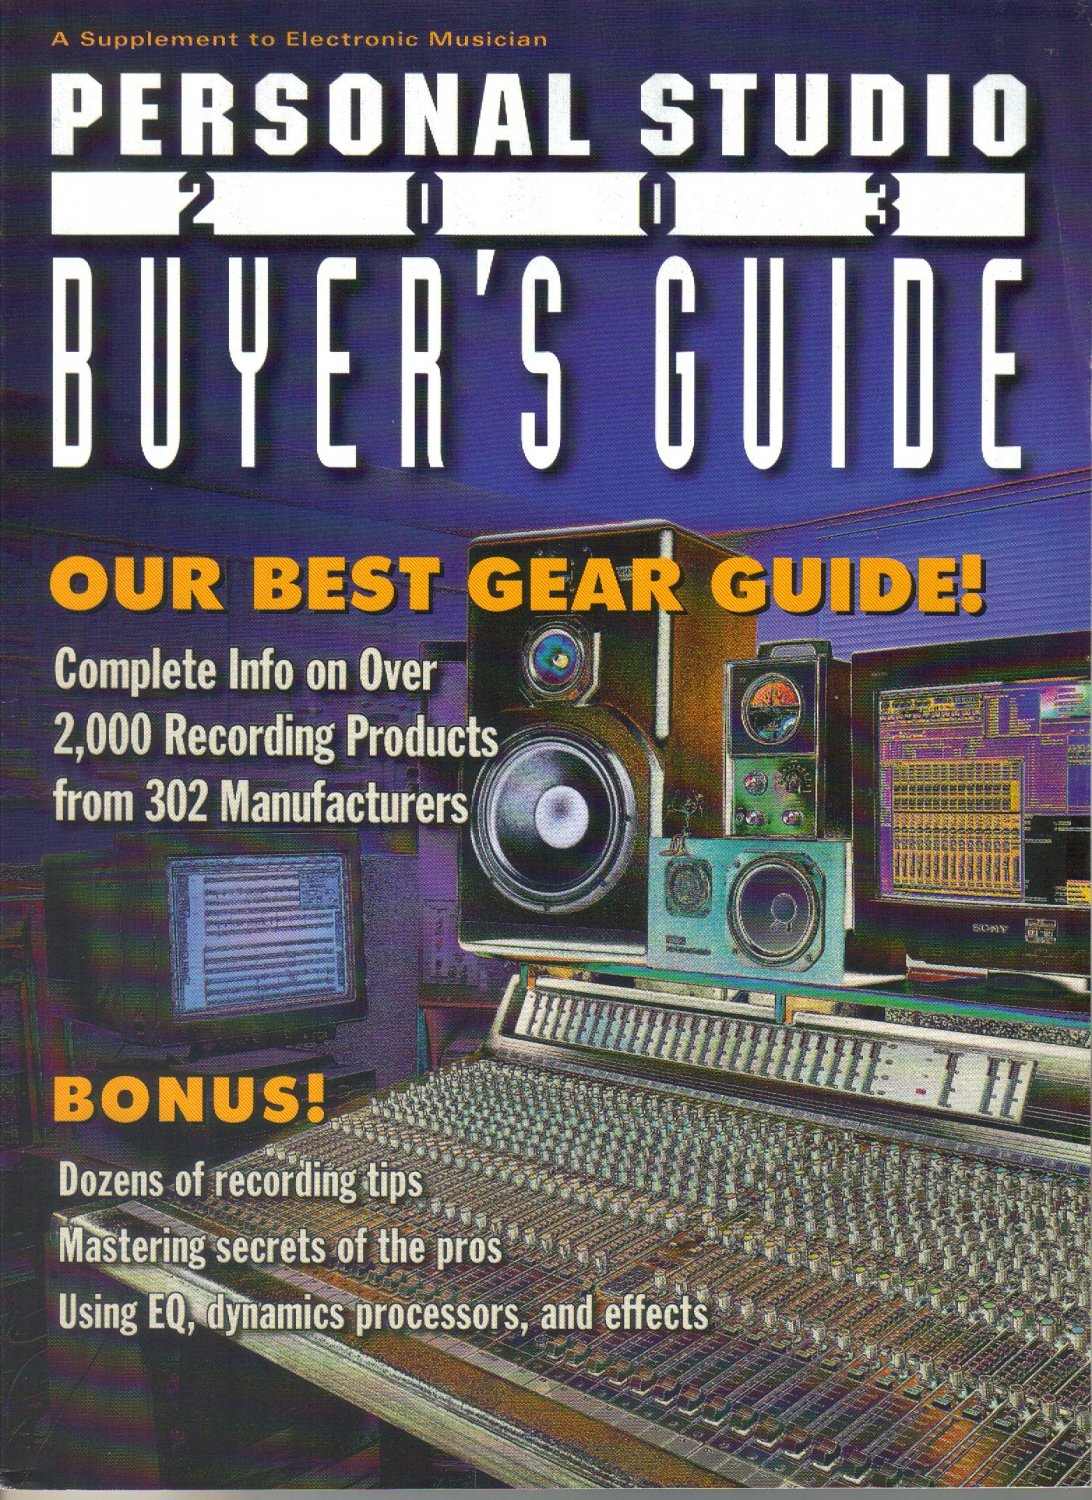 Supplement to Electronic Musician Magazine, Personal Studio 2003 Buyer's Guide-EQing Reverbs Delays